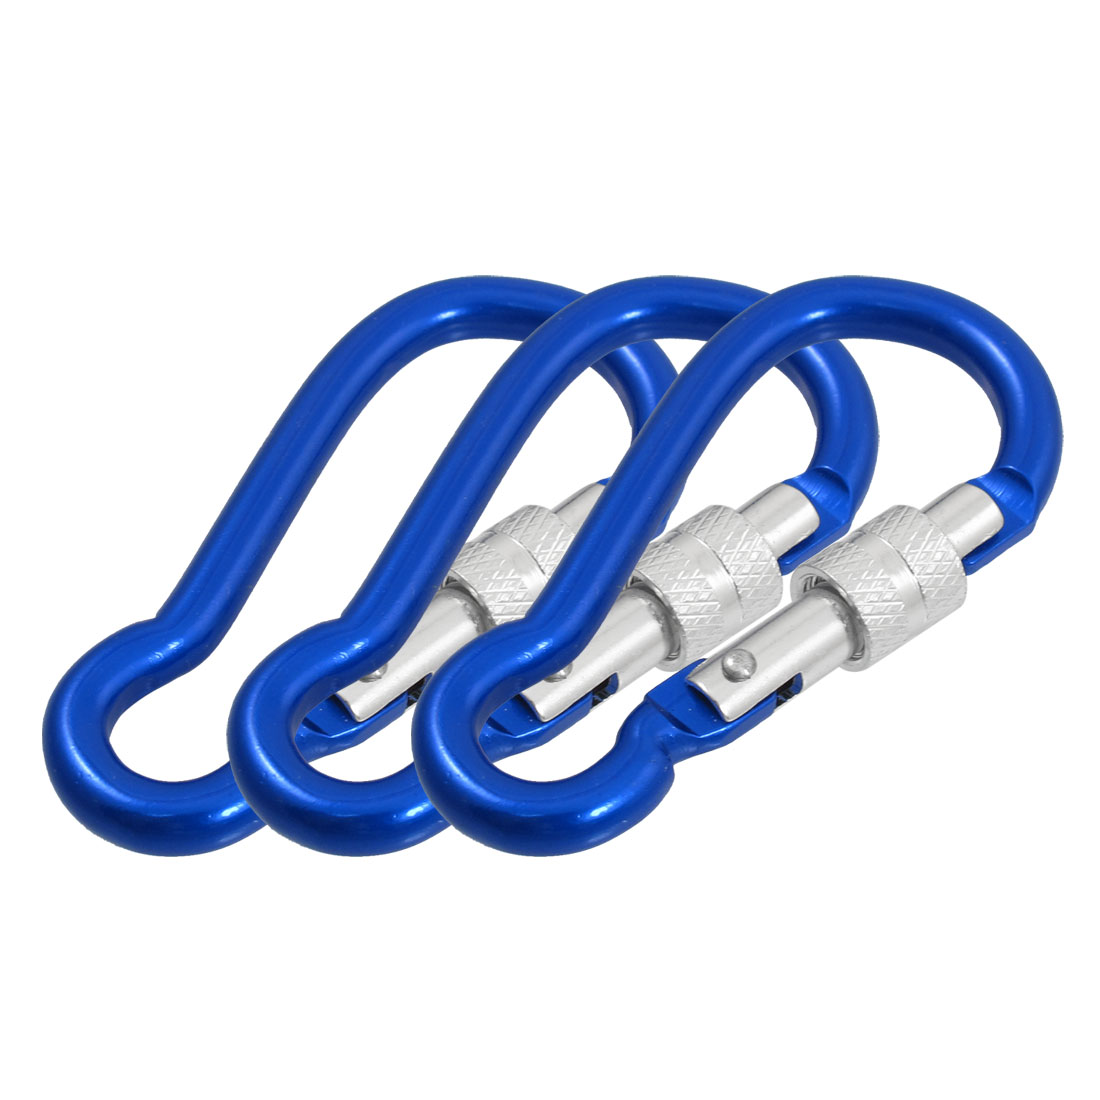 3 Pcs Blue Aluminum Alloy Gourd Shaped Locking Outdoor Carabiner Hook Keychain 7cm